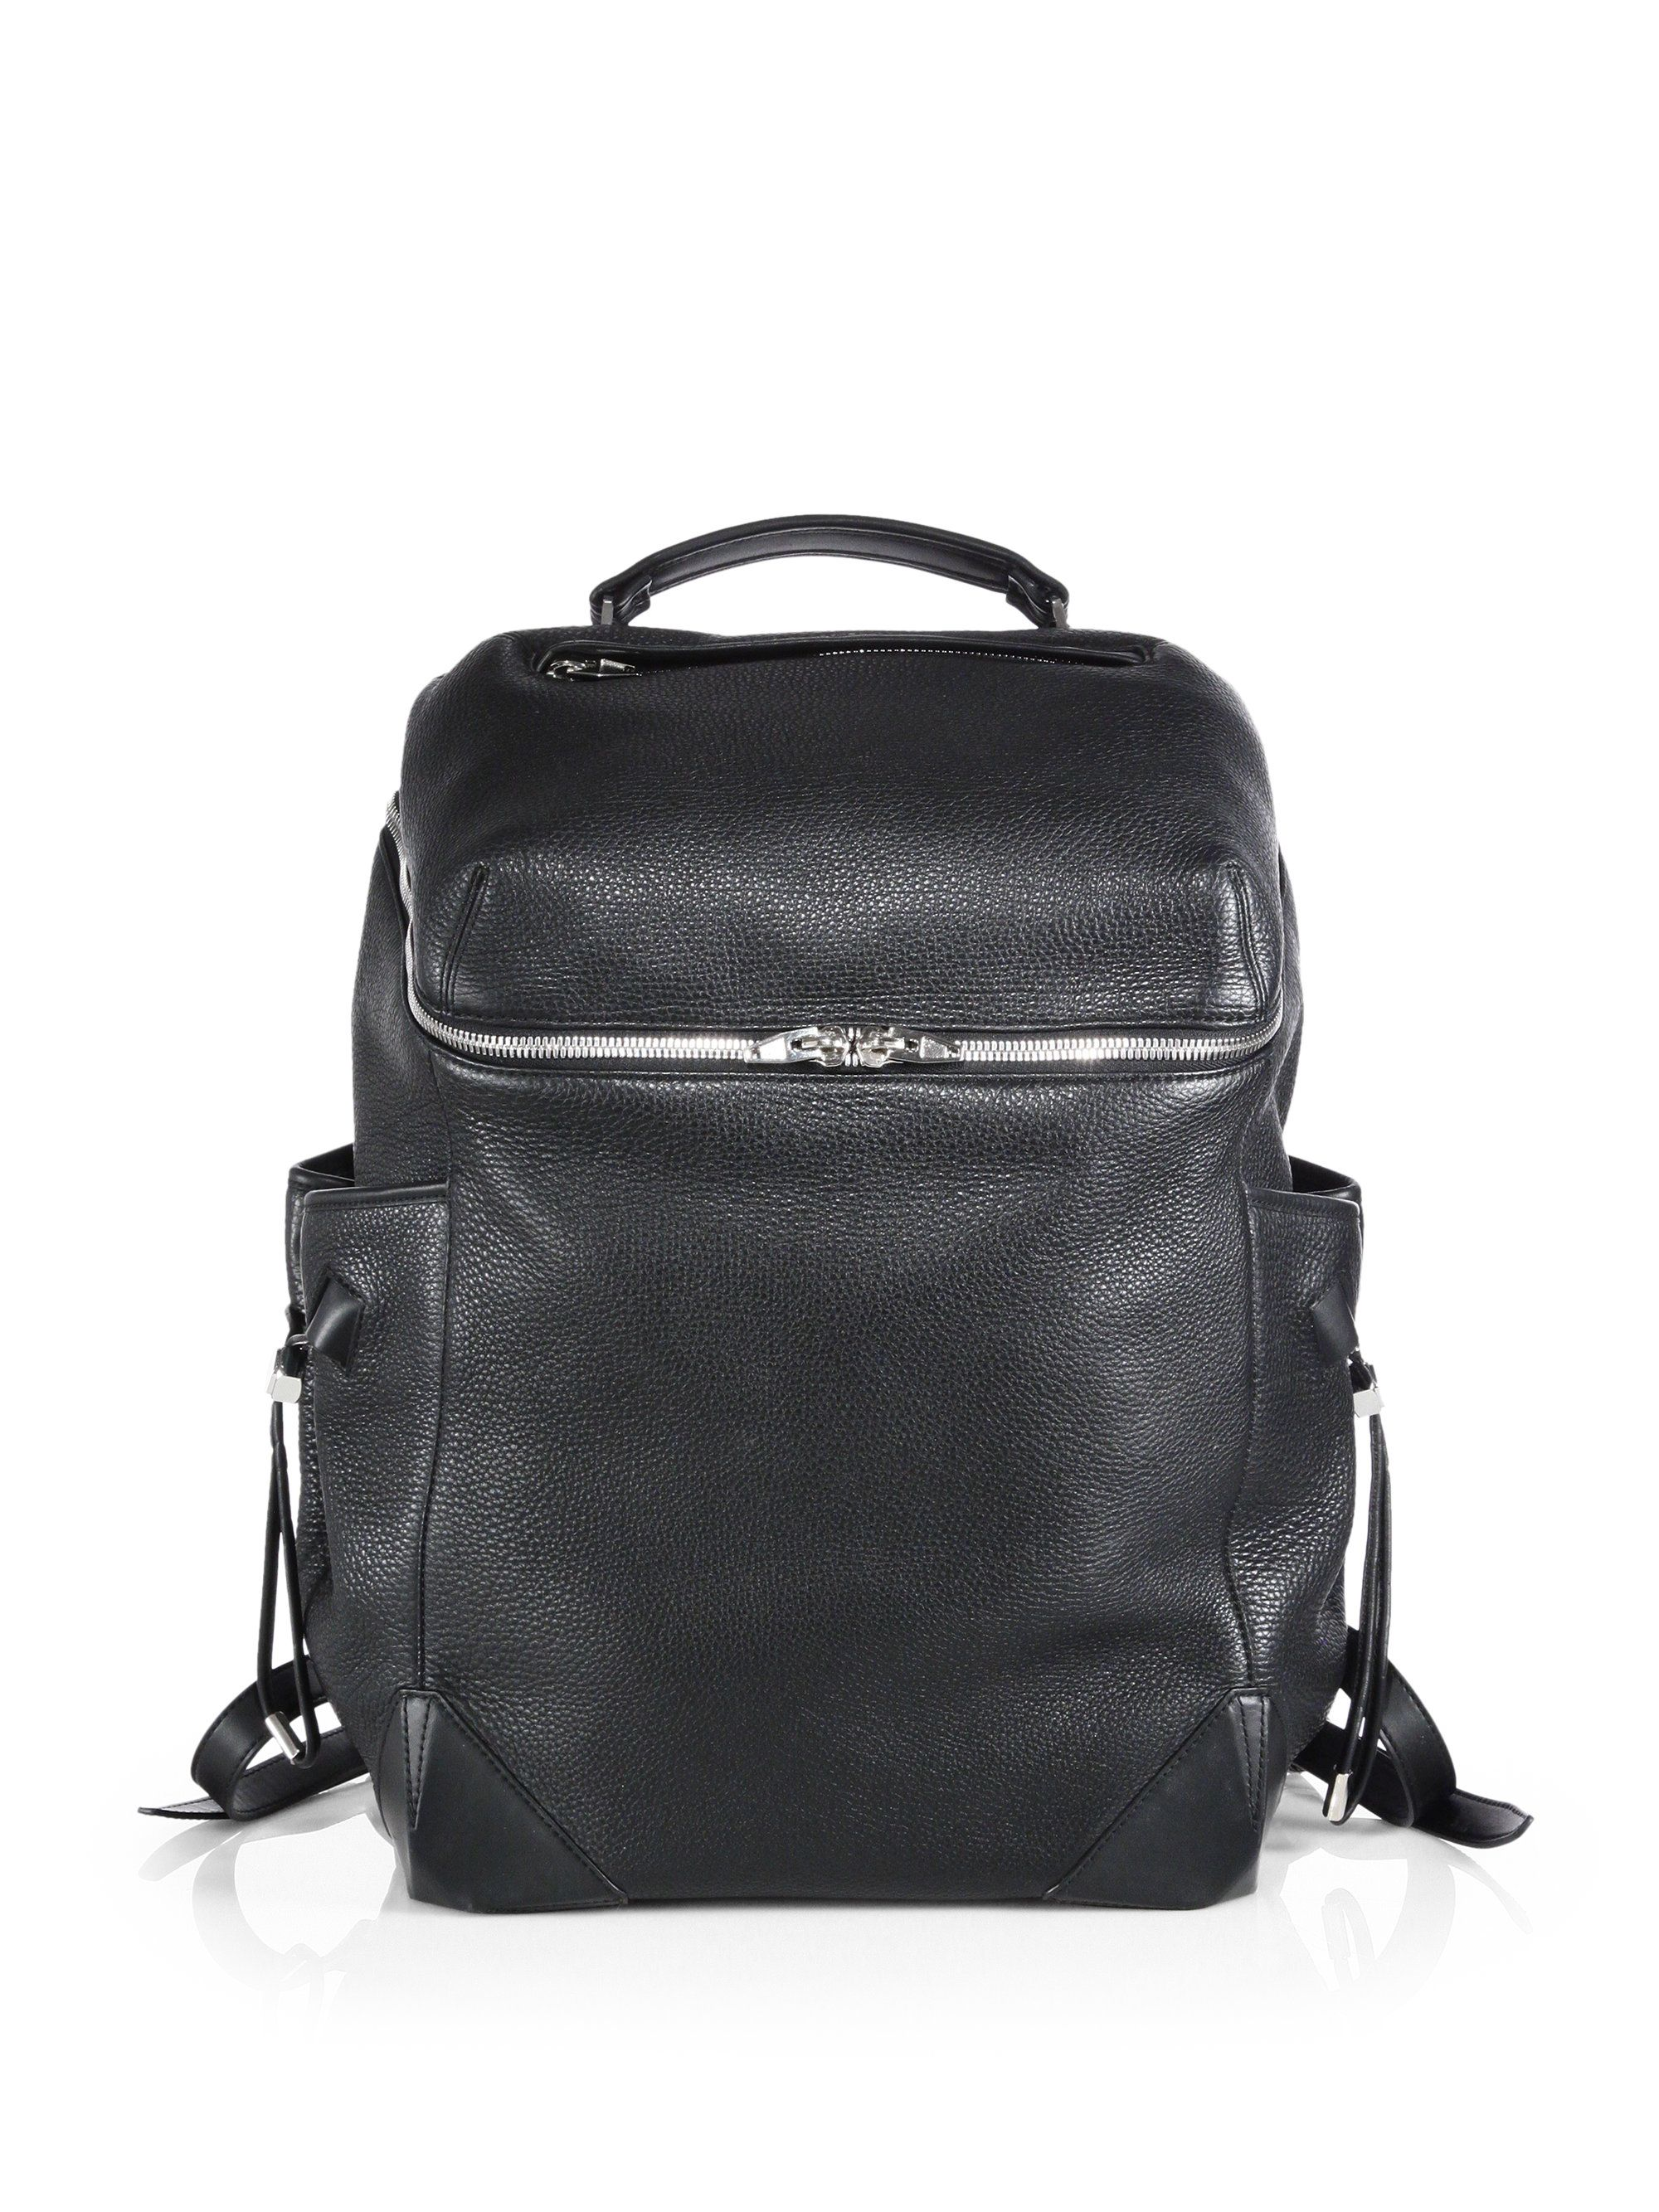 c60a732d52f1 Alexander Wang Wallie Pebbled Leather Backpack in Black for Men ...